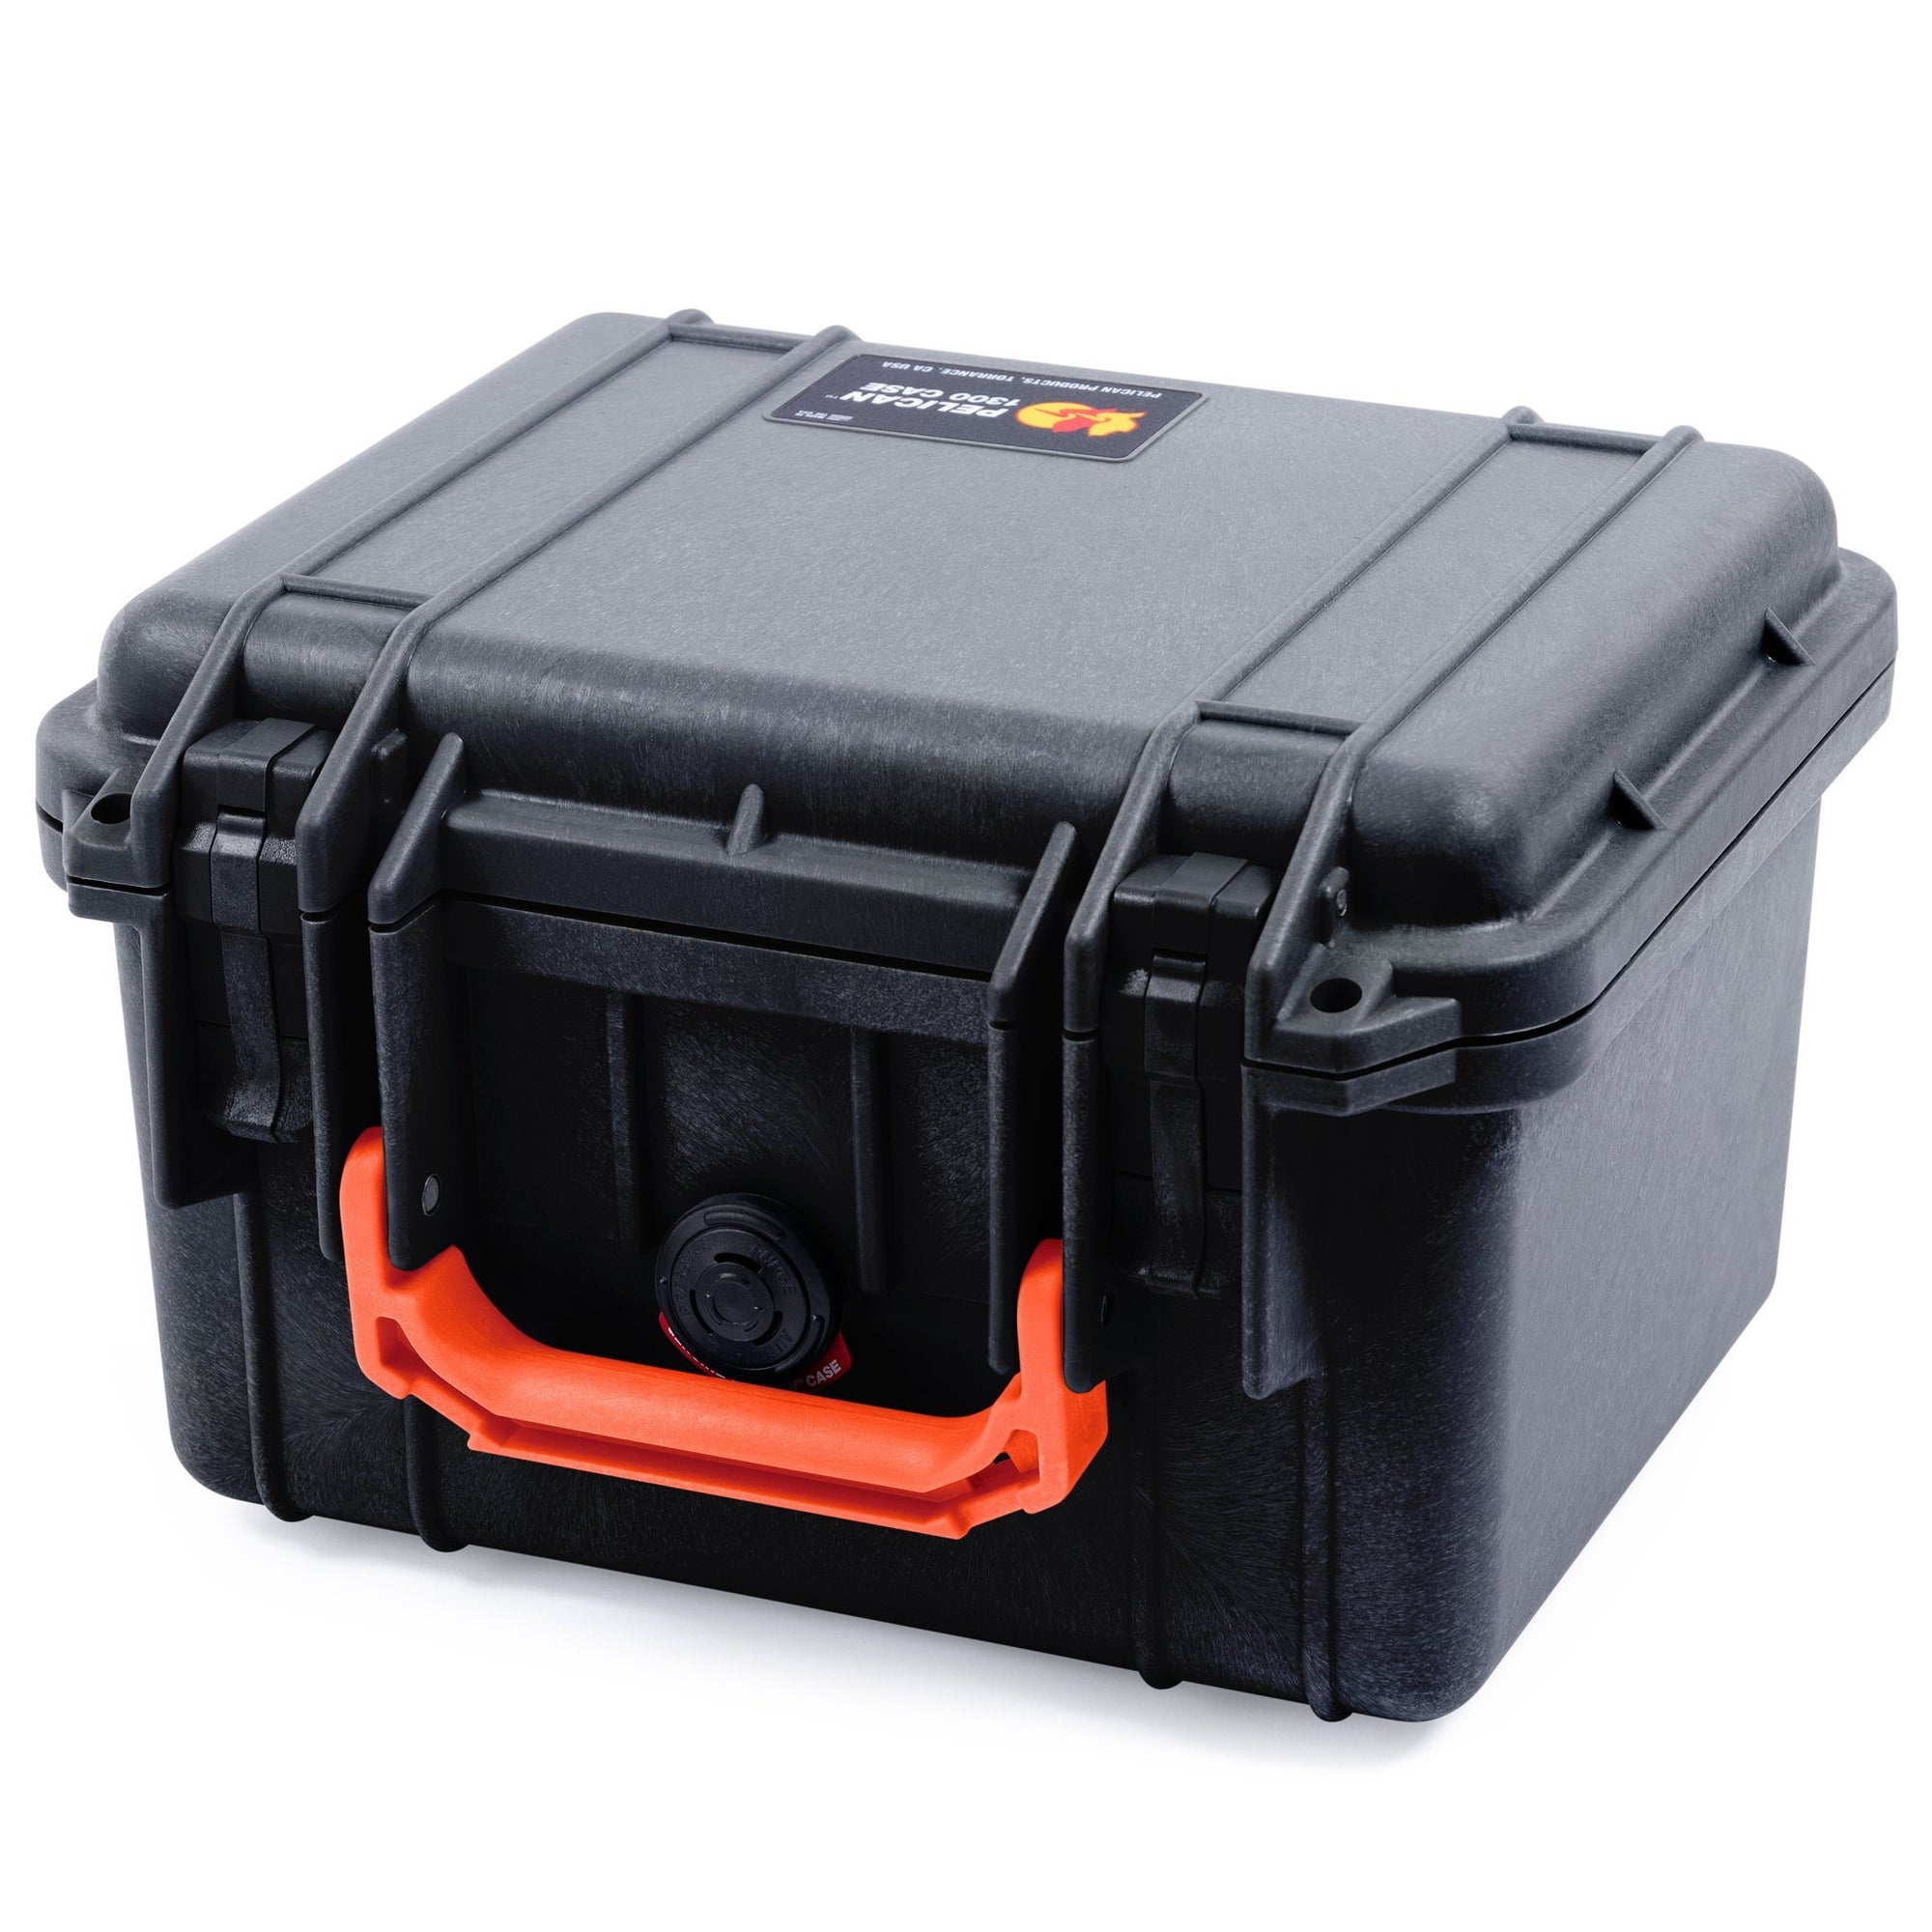 Pelican 1300 Case, Black with Orange Handle - Pelican Color Case